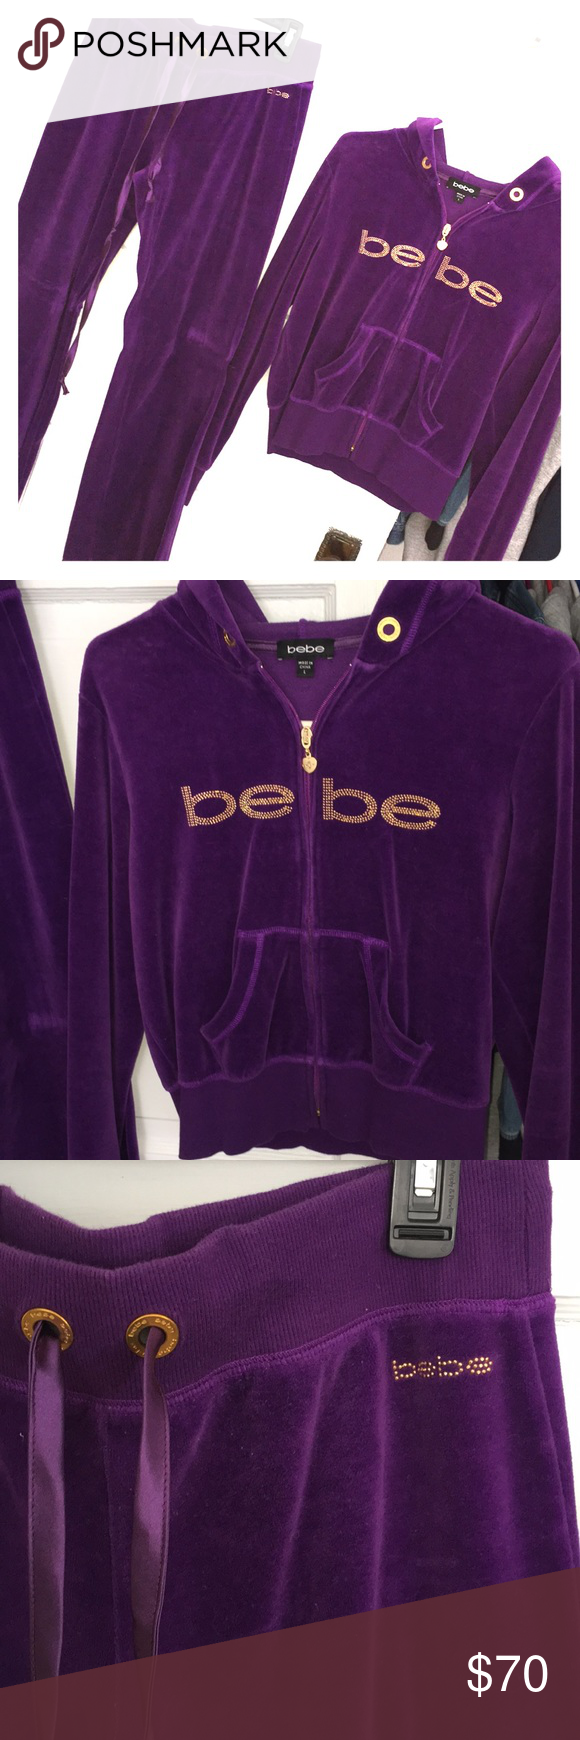 db1ed32d94a Bebe velour track suit Beautiful dark purple BEBE velour track suit. Very  gently worn maybe twice. Excellent condition. Size Large.